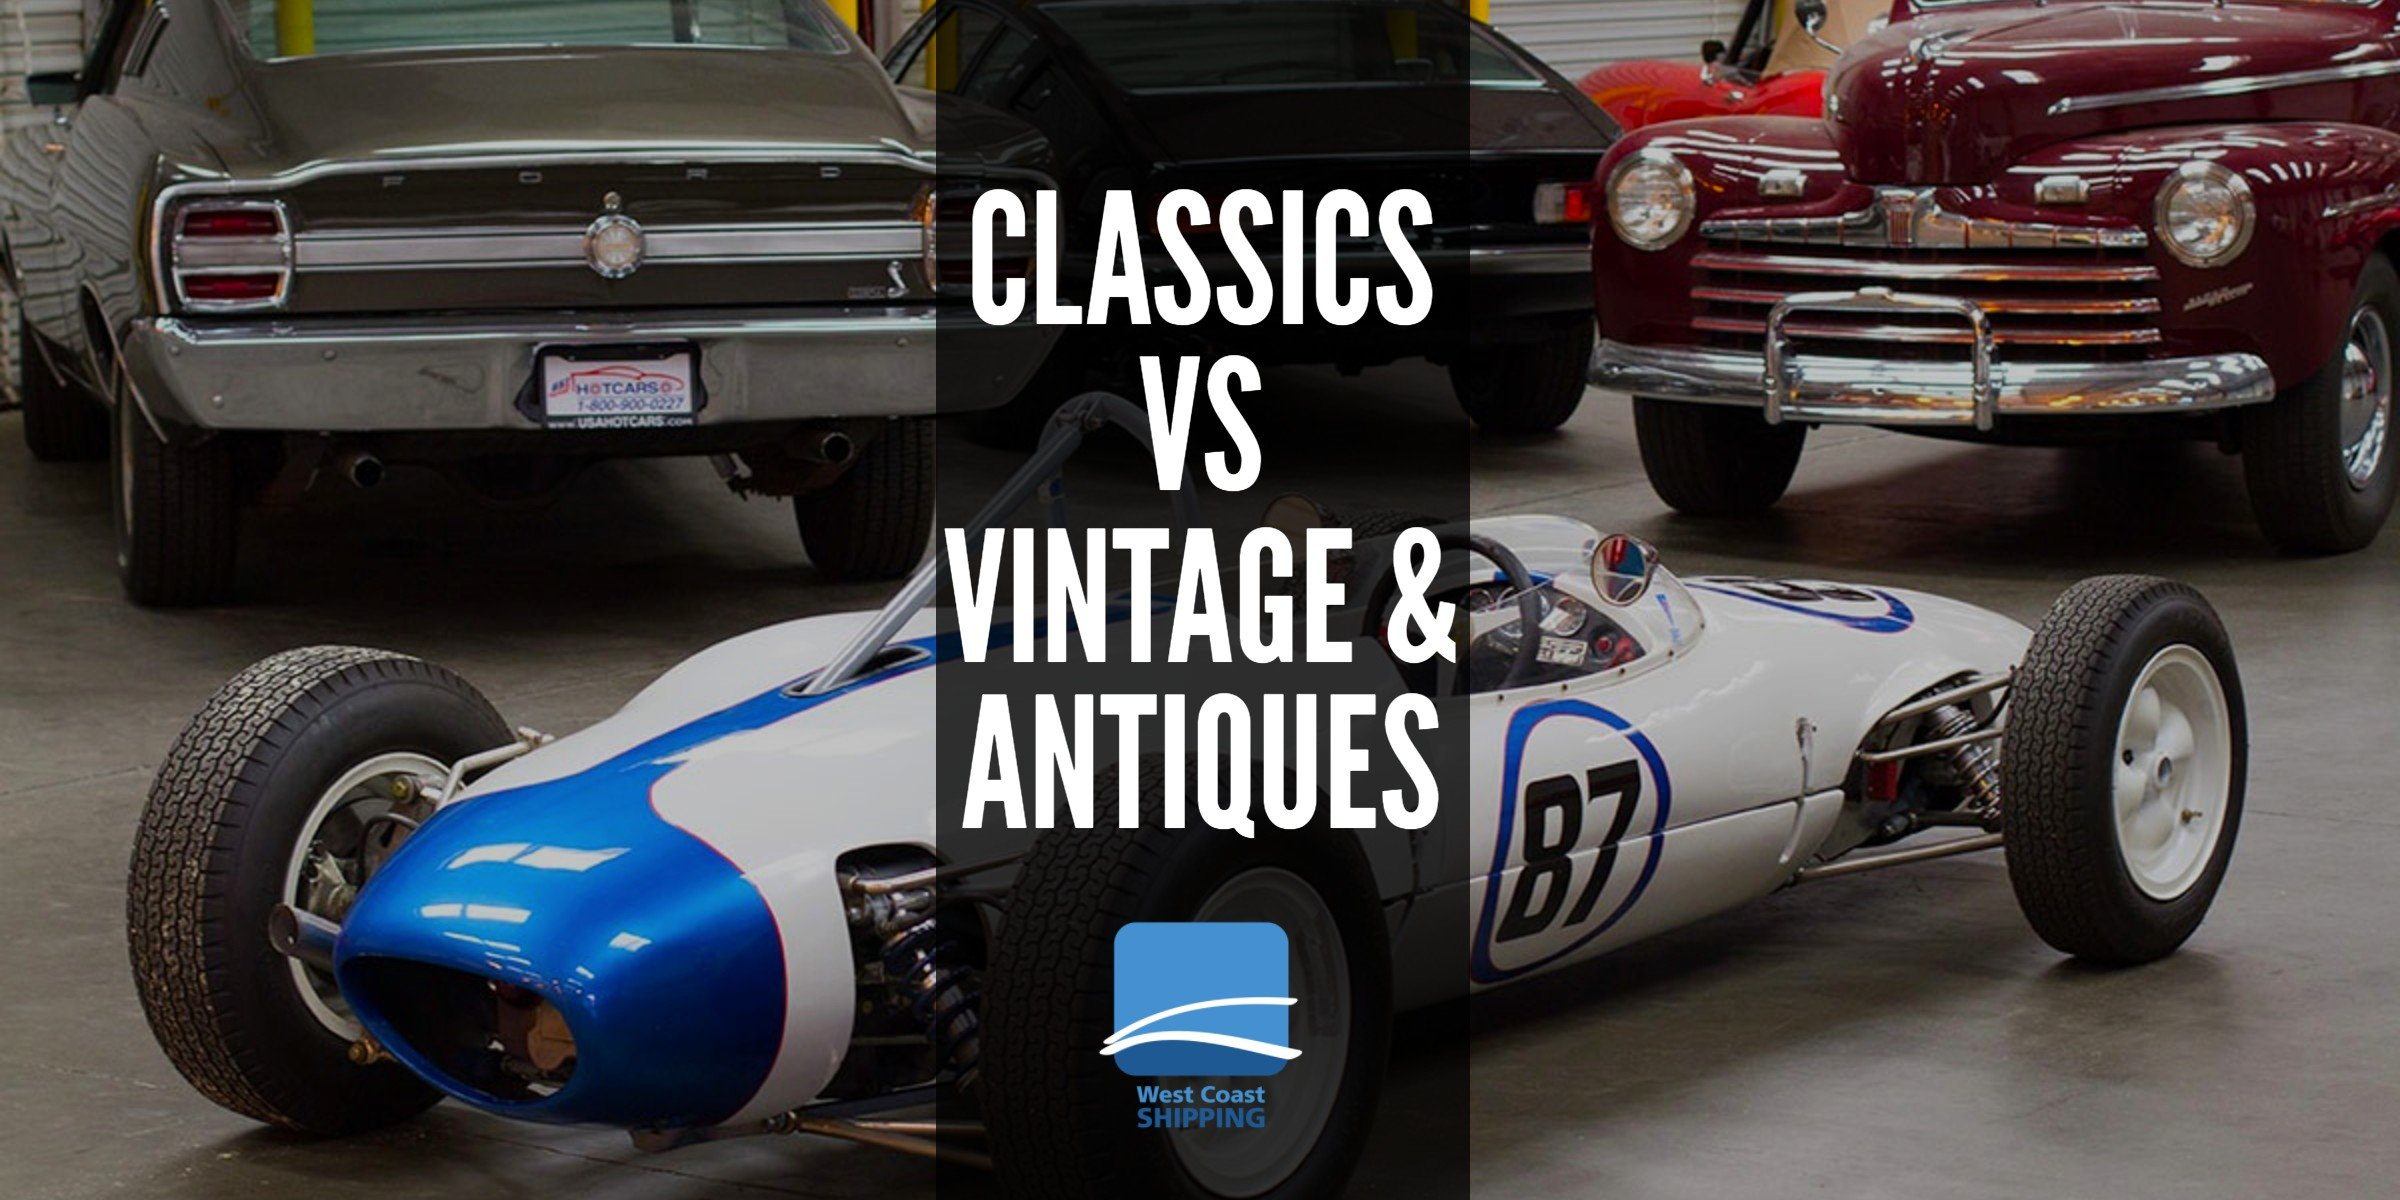 Classics vs Vintage & antique cars.jpg